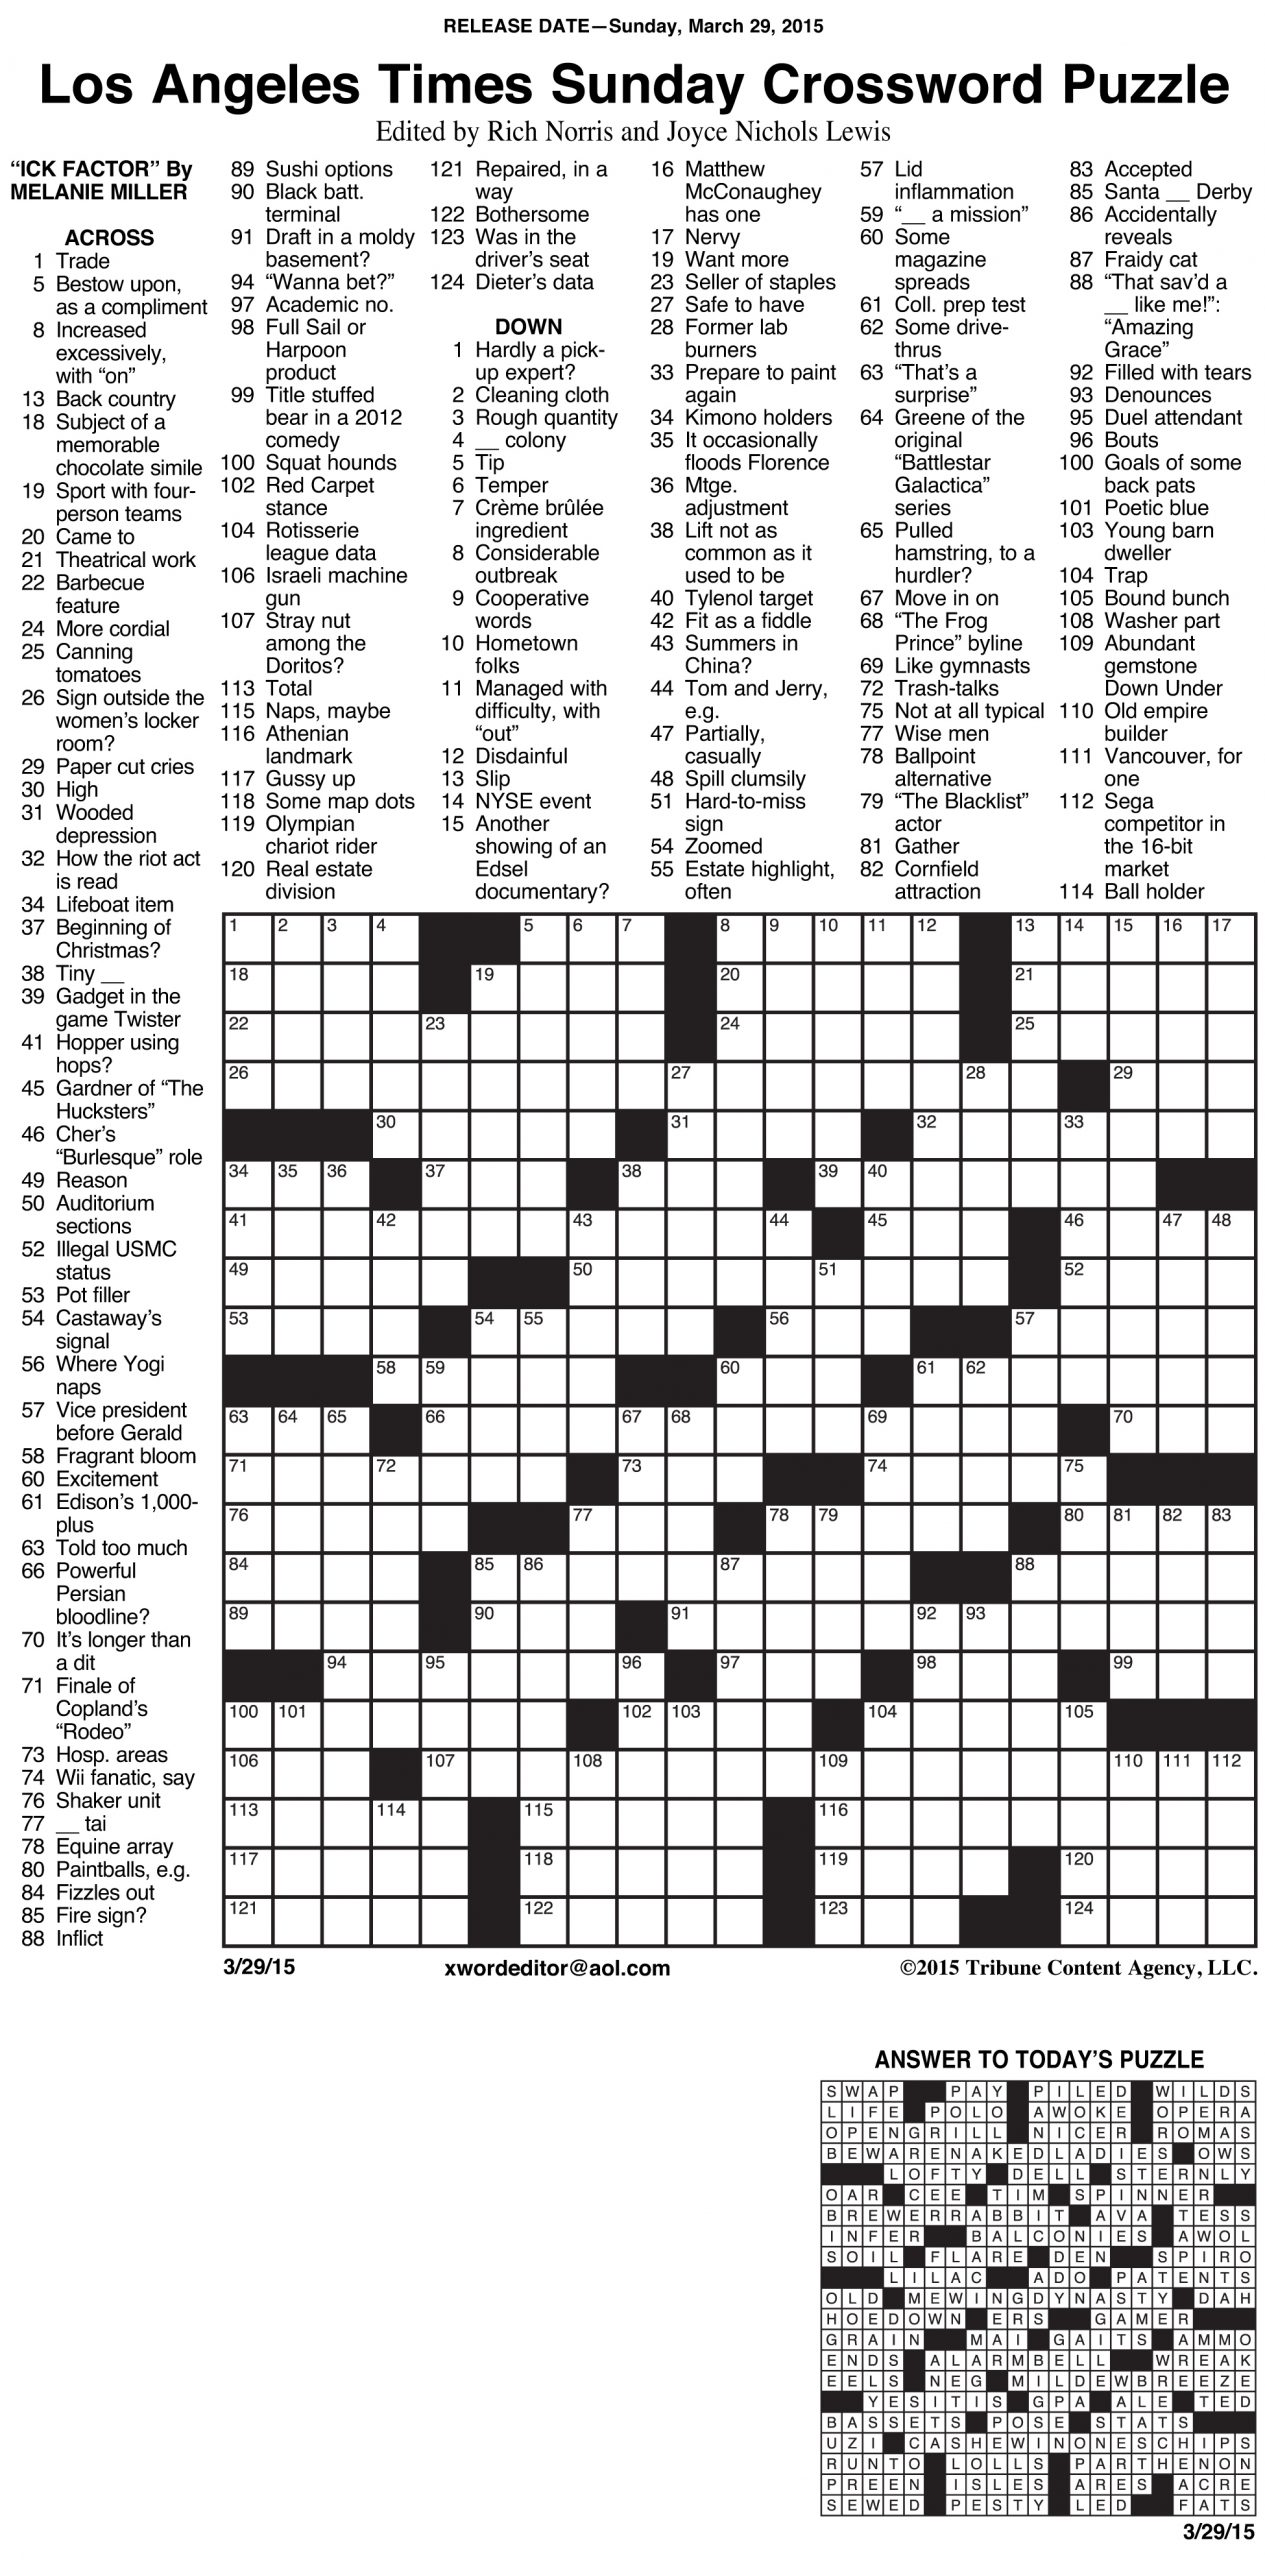 Sample Of Los Angeles Times Sunday Crossword Puzzle